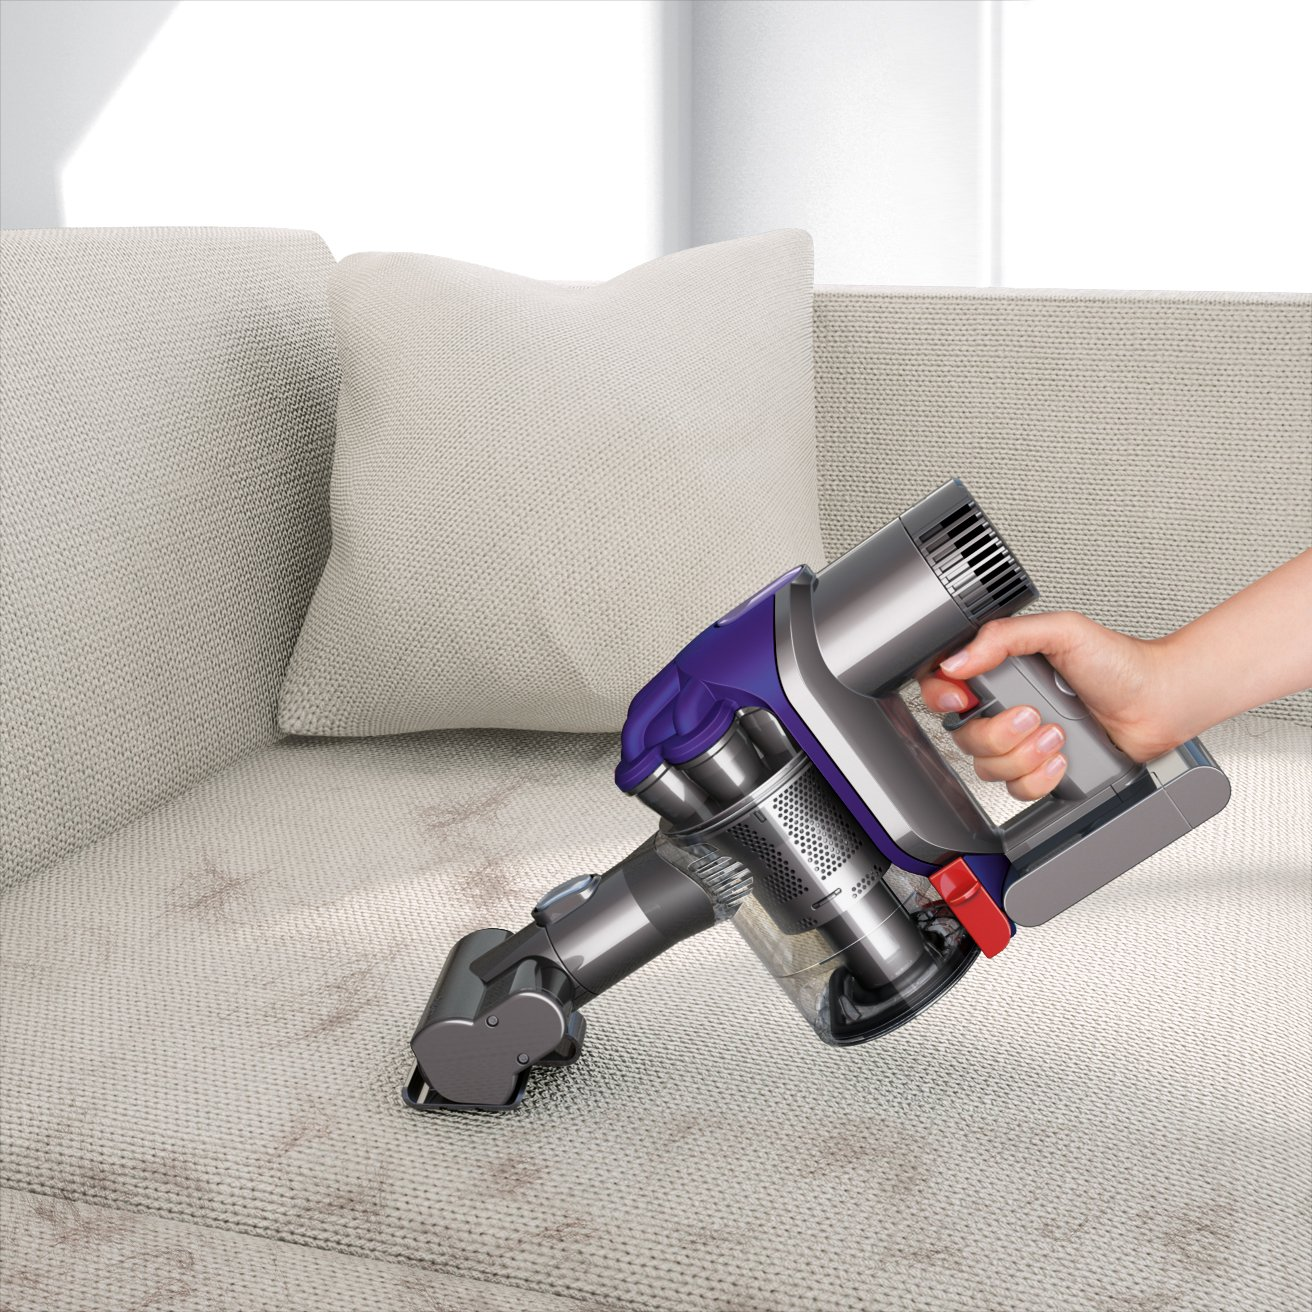 What Is The Best Vacuum To Buy